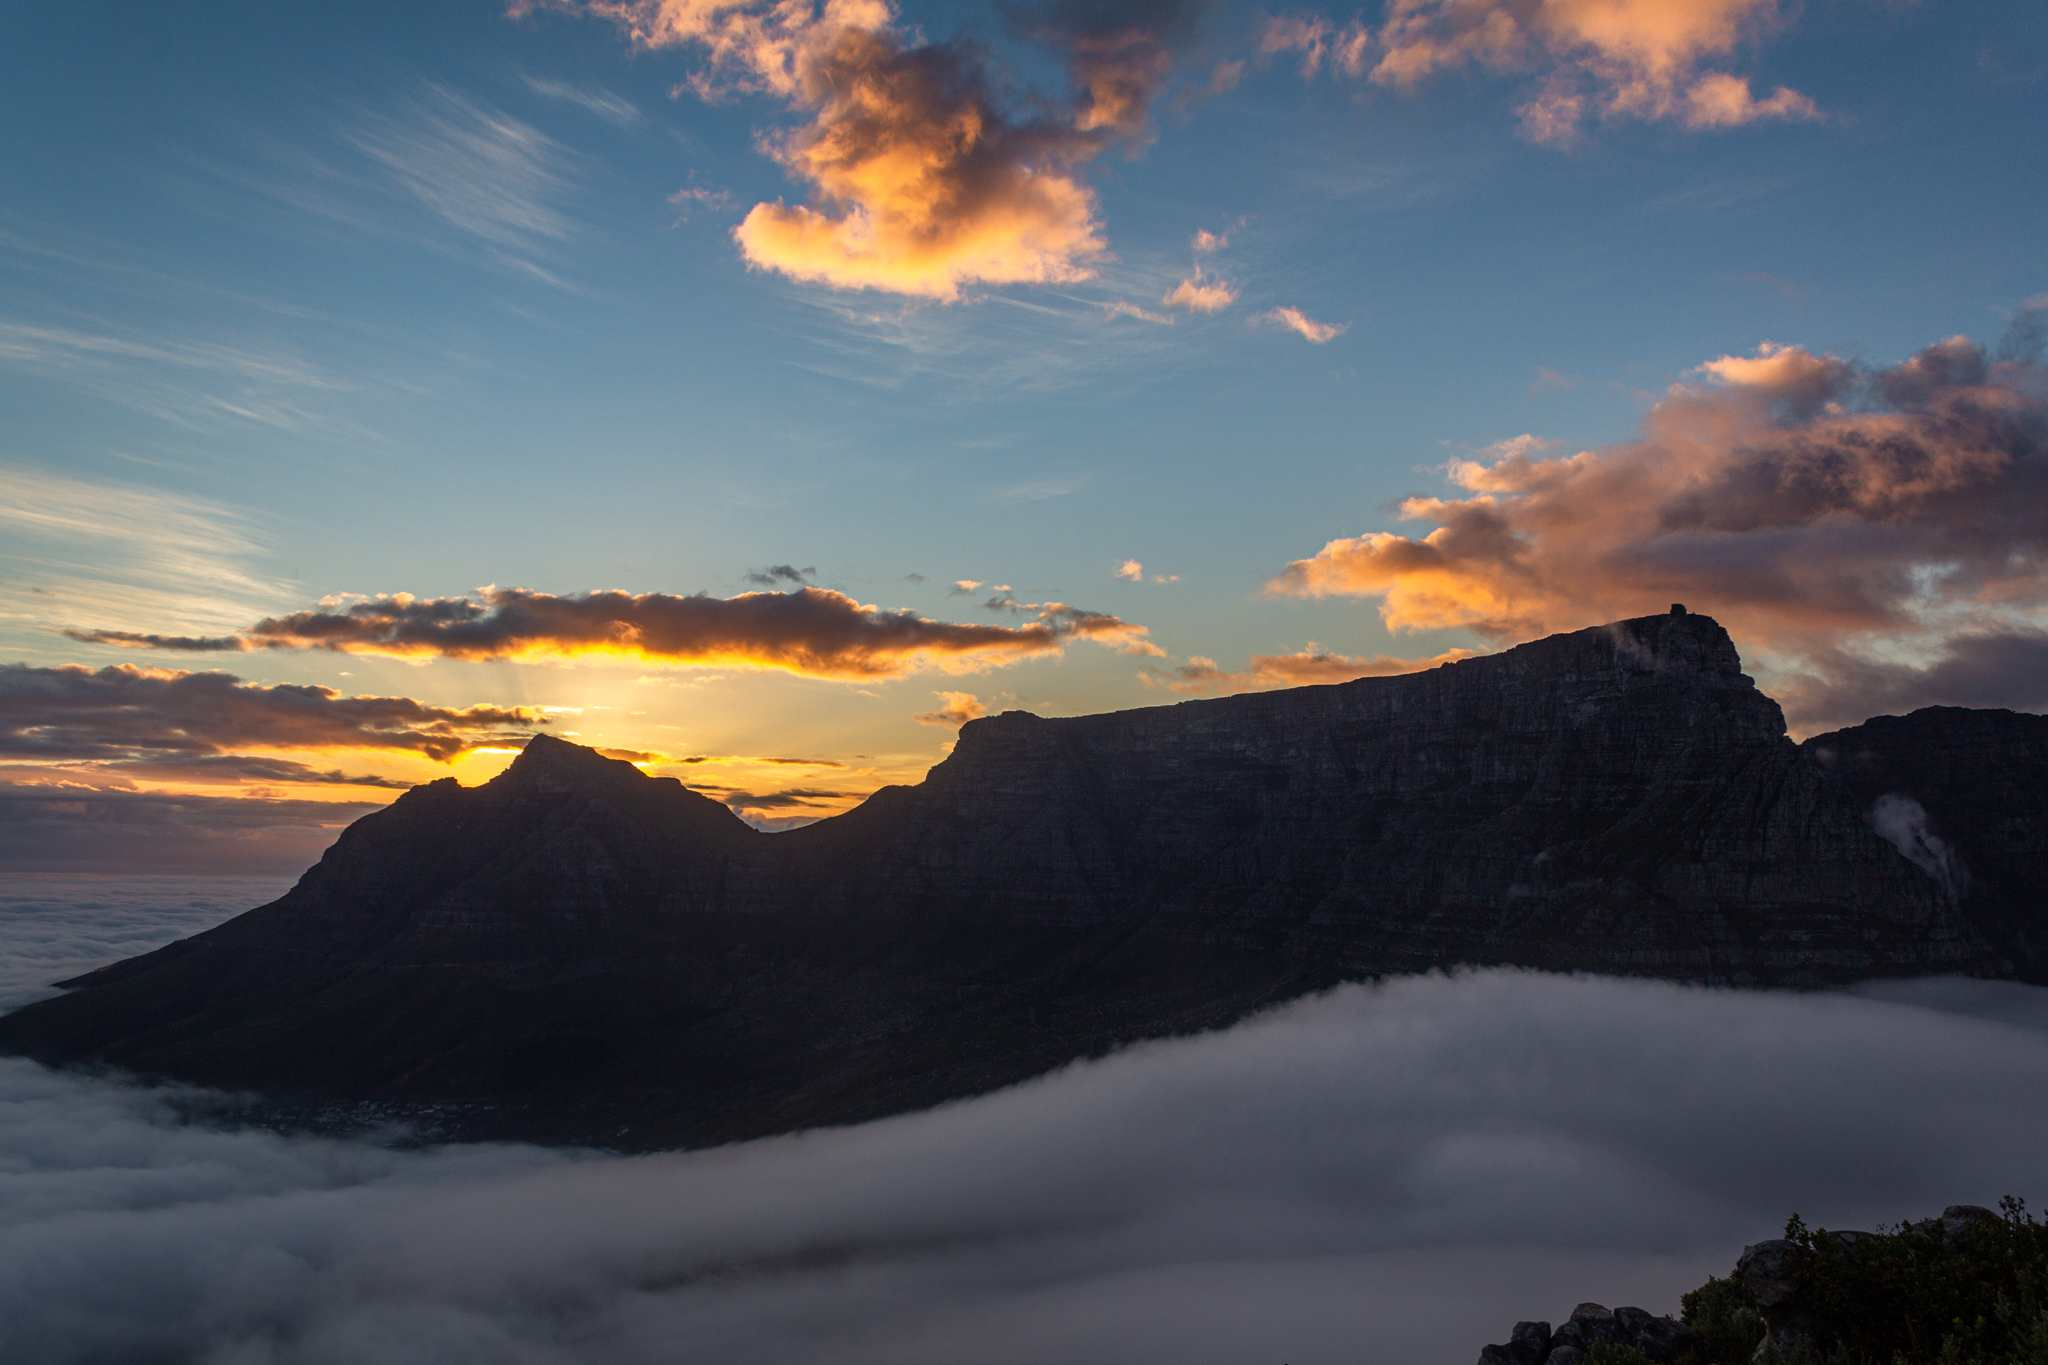 table mountain at sunrises with a thick fog at the base of the mountain; the sunrise is yellow and orange